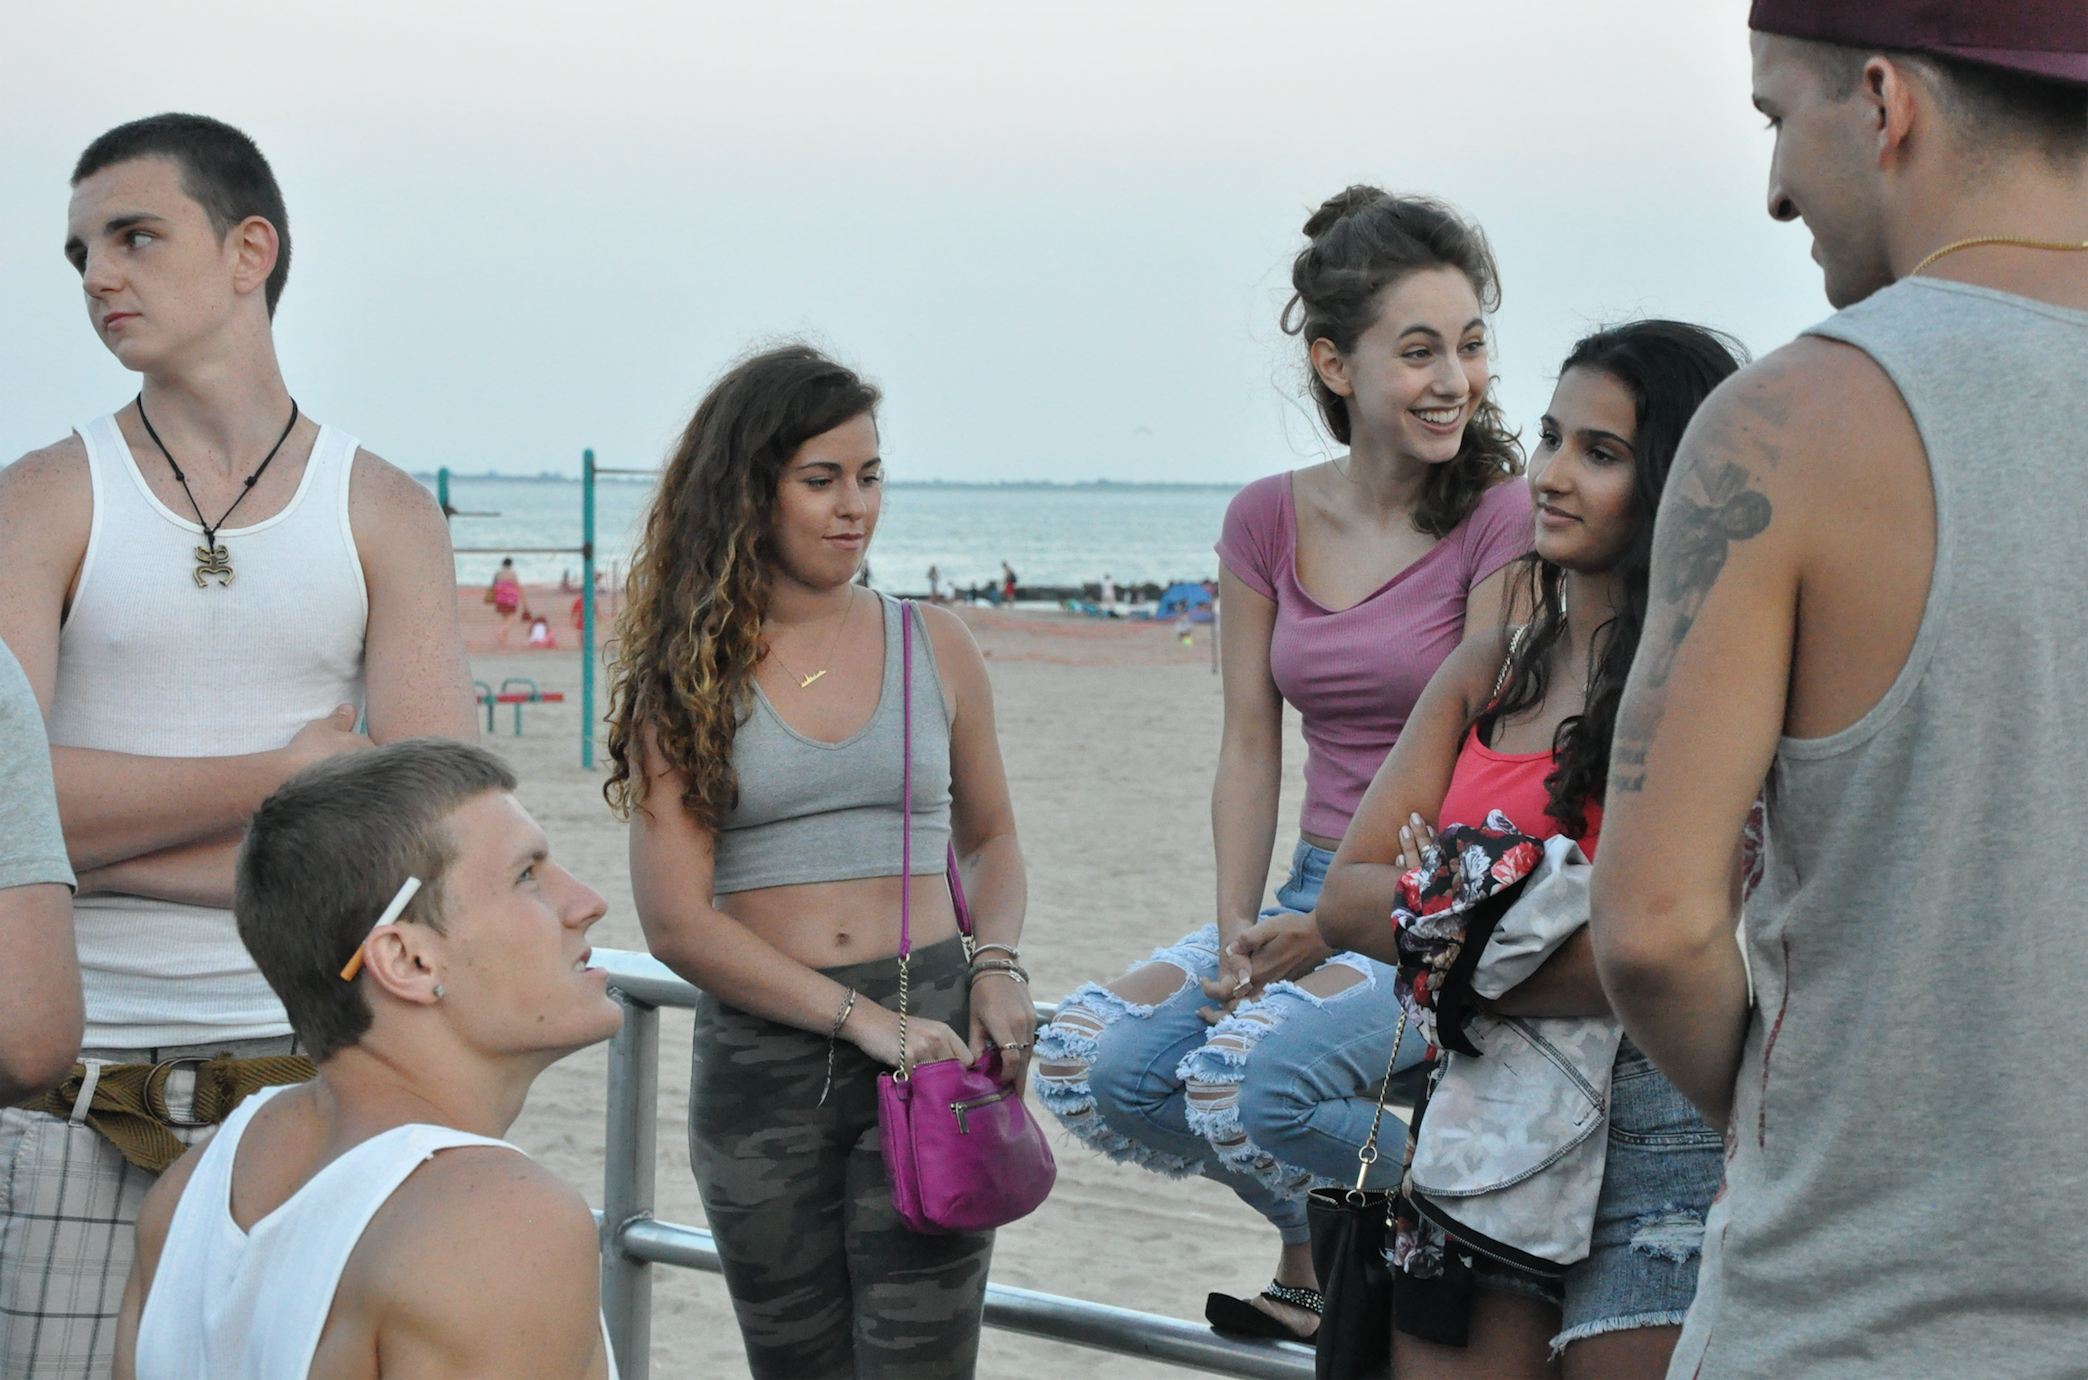 Beach_Rats_Film_Still_13.png